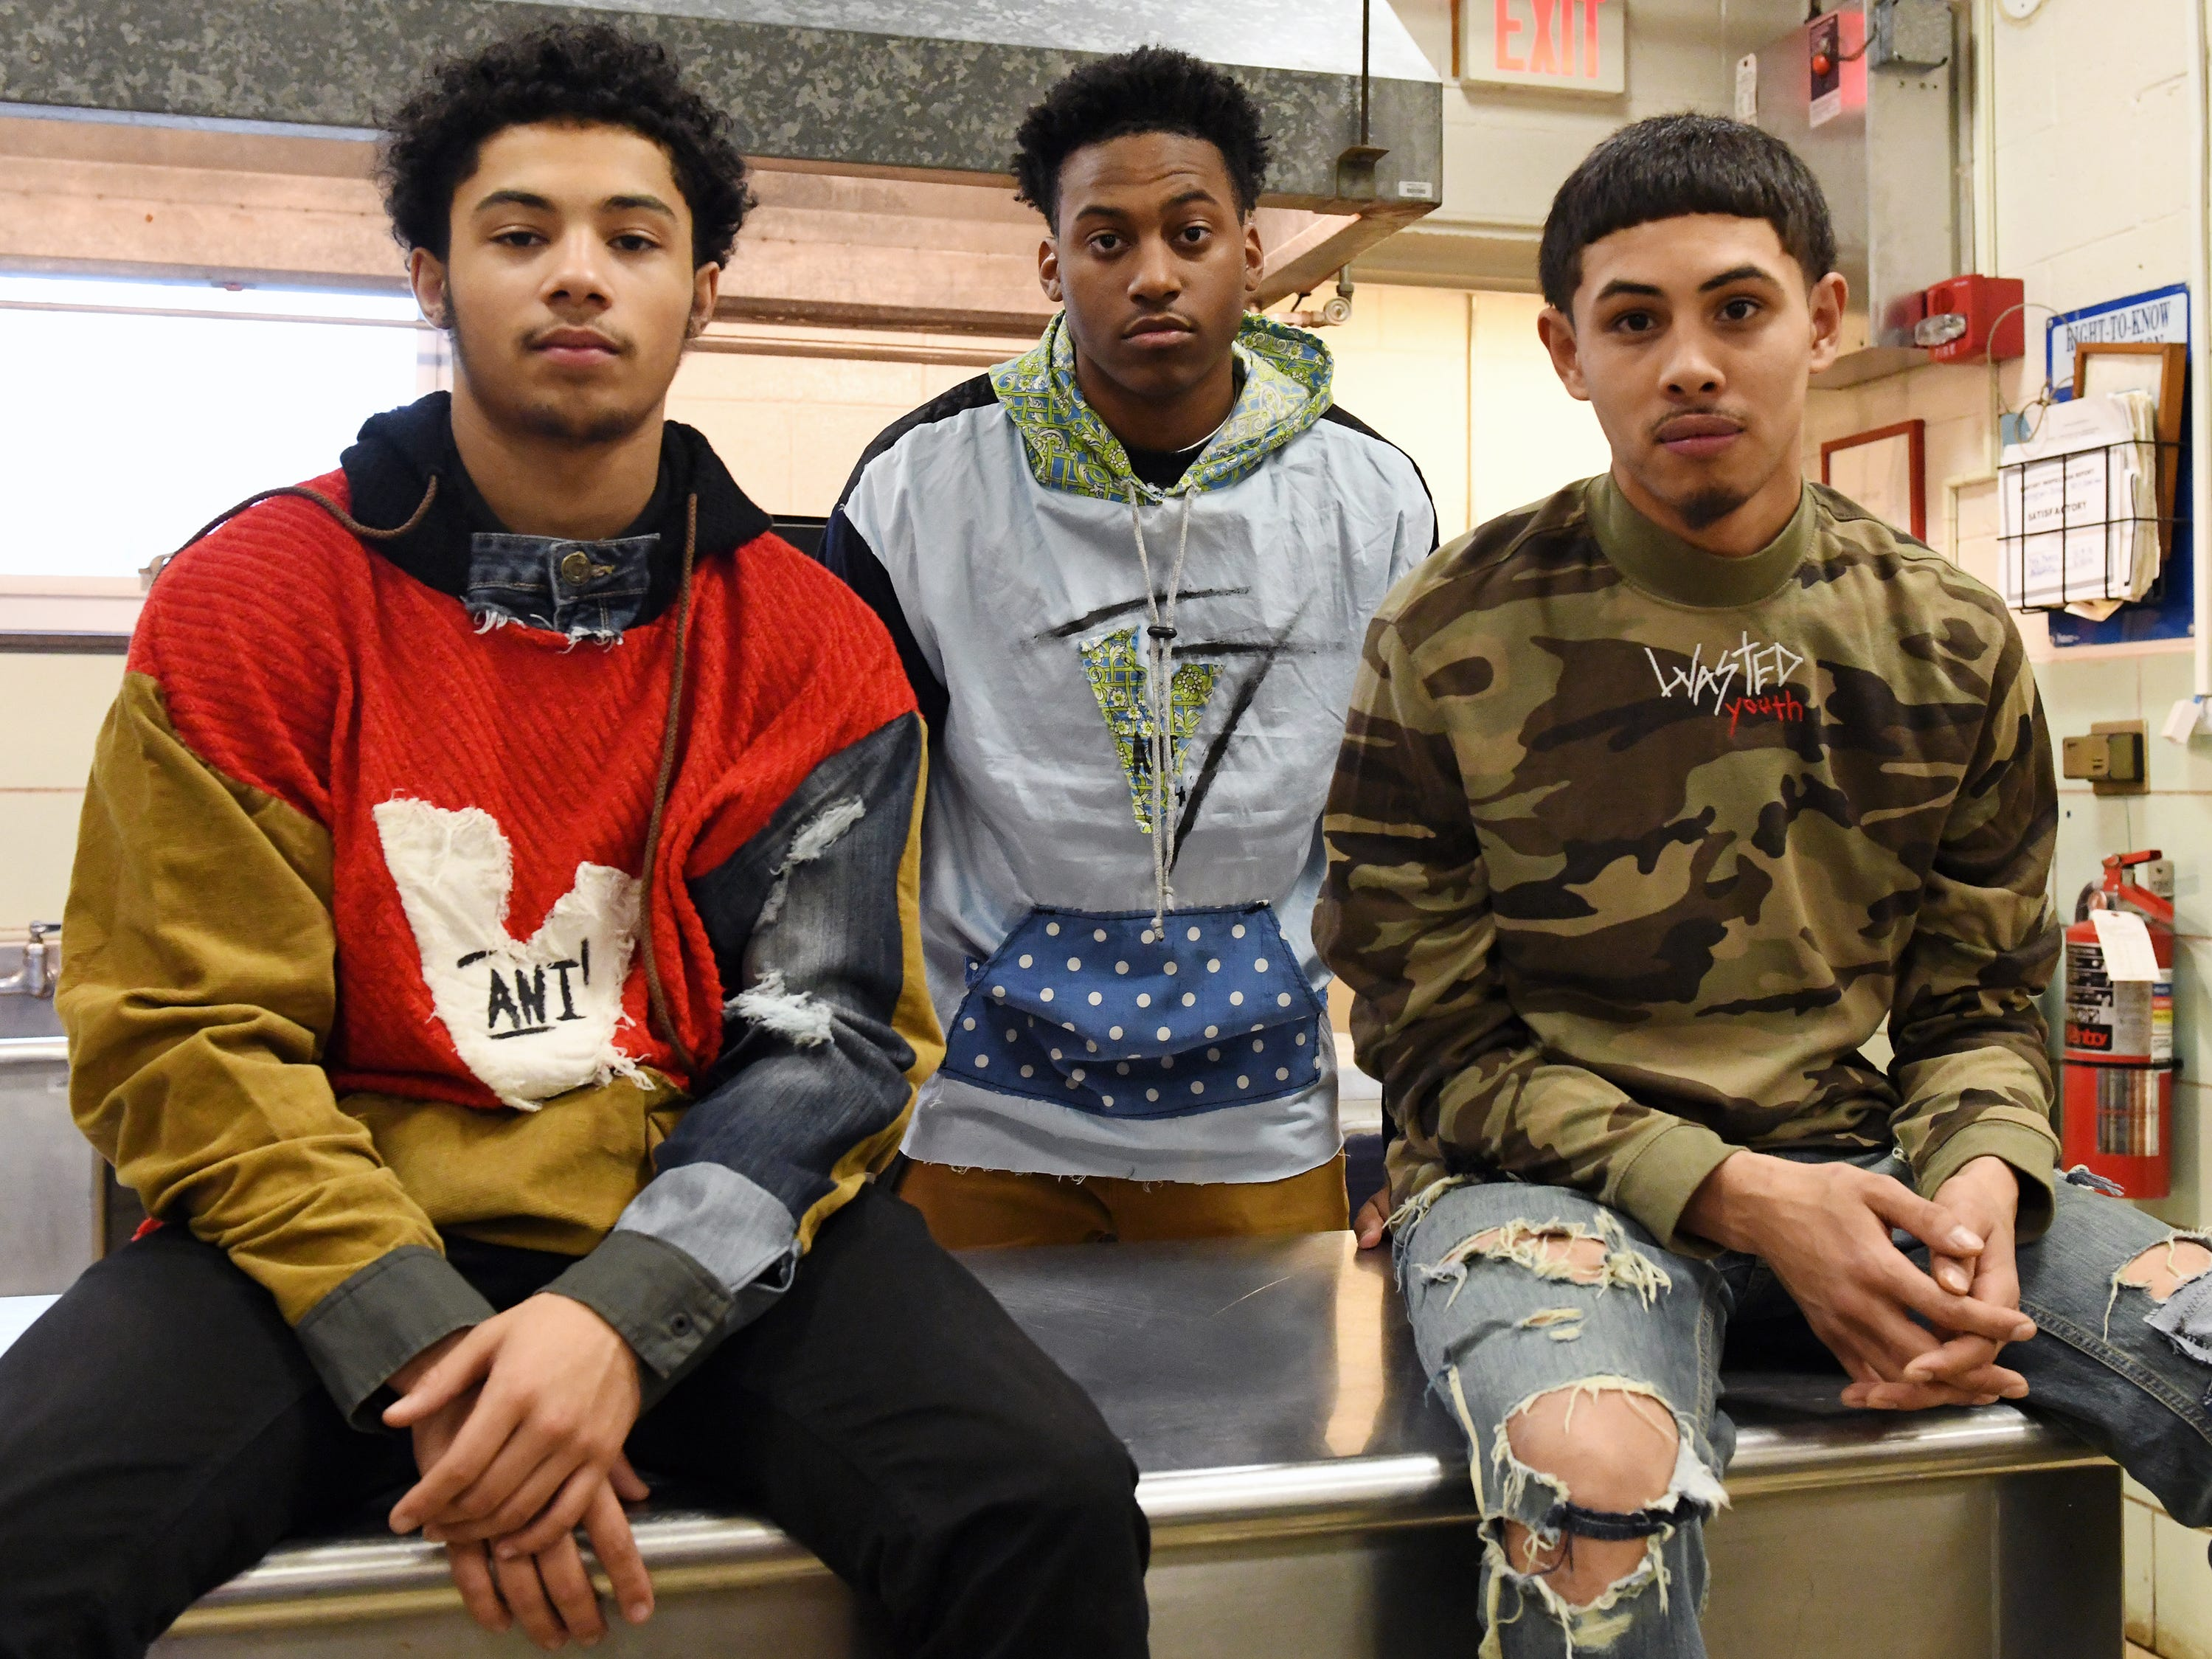 Fabricio Lobo (right) shows off some of his fashion line with his friends Cameron Purnell (center) and Zae Bogan at Cunningham Academy in Vineland on Thursday, Jan. 24, 2019.